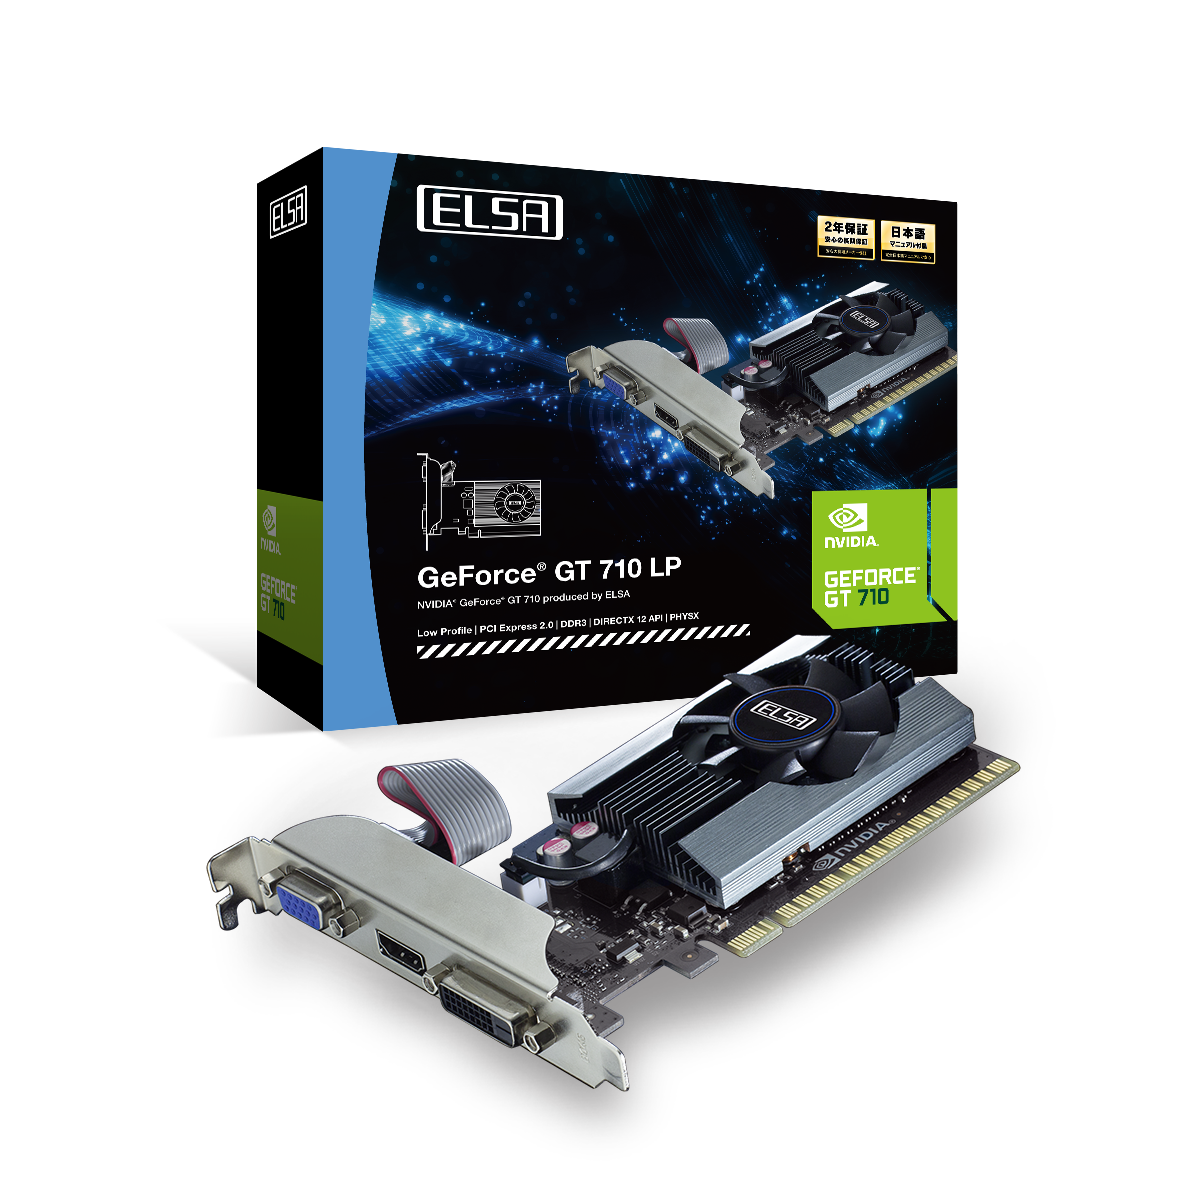 elsa_geforce_gt_710_lp_3qtr_box